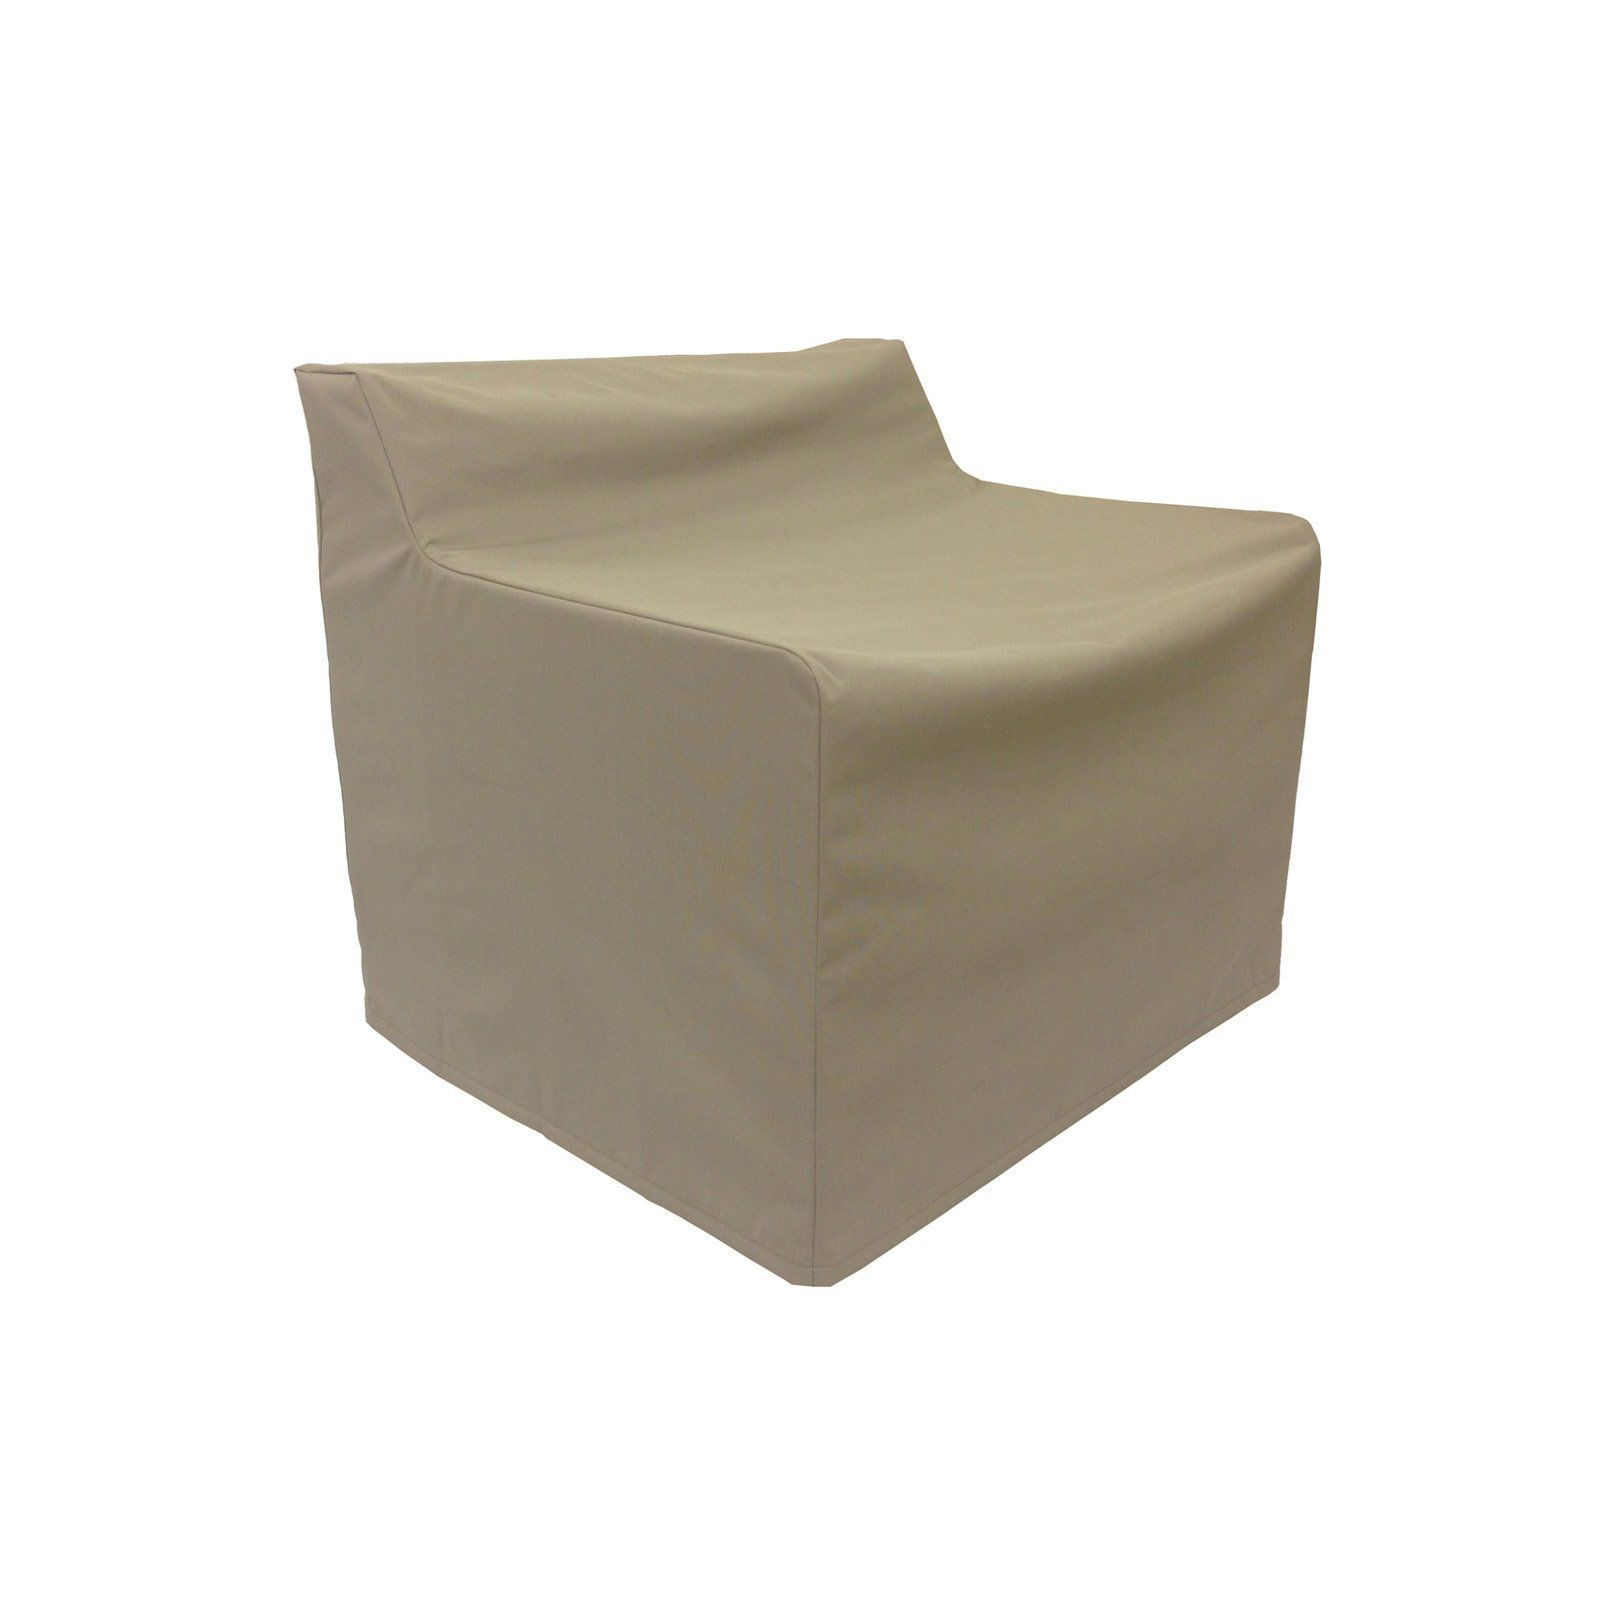 Sensational Easy Way Products Patio Lounge Chair Cover 14600L C351 Andrewgaddart Wooden Chair Designs For Living Room Andrewgaddartcom